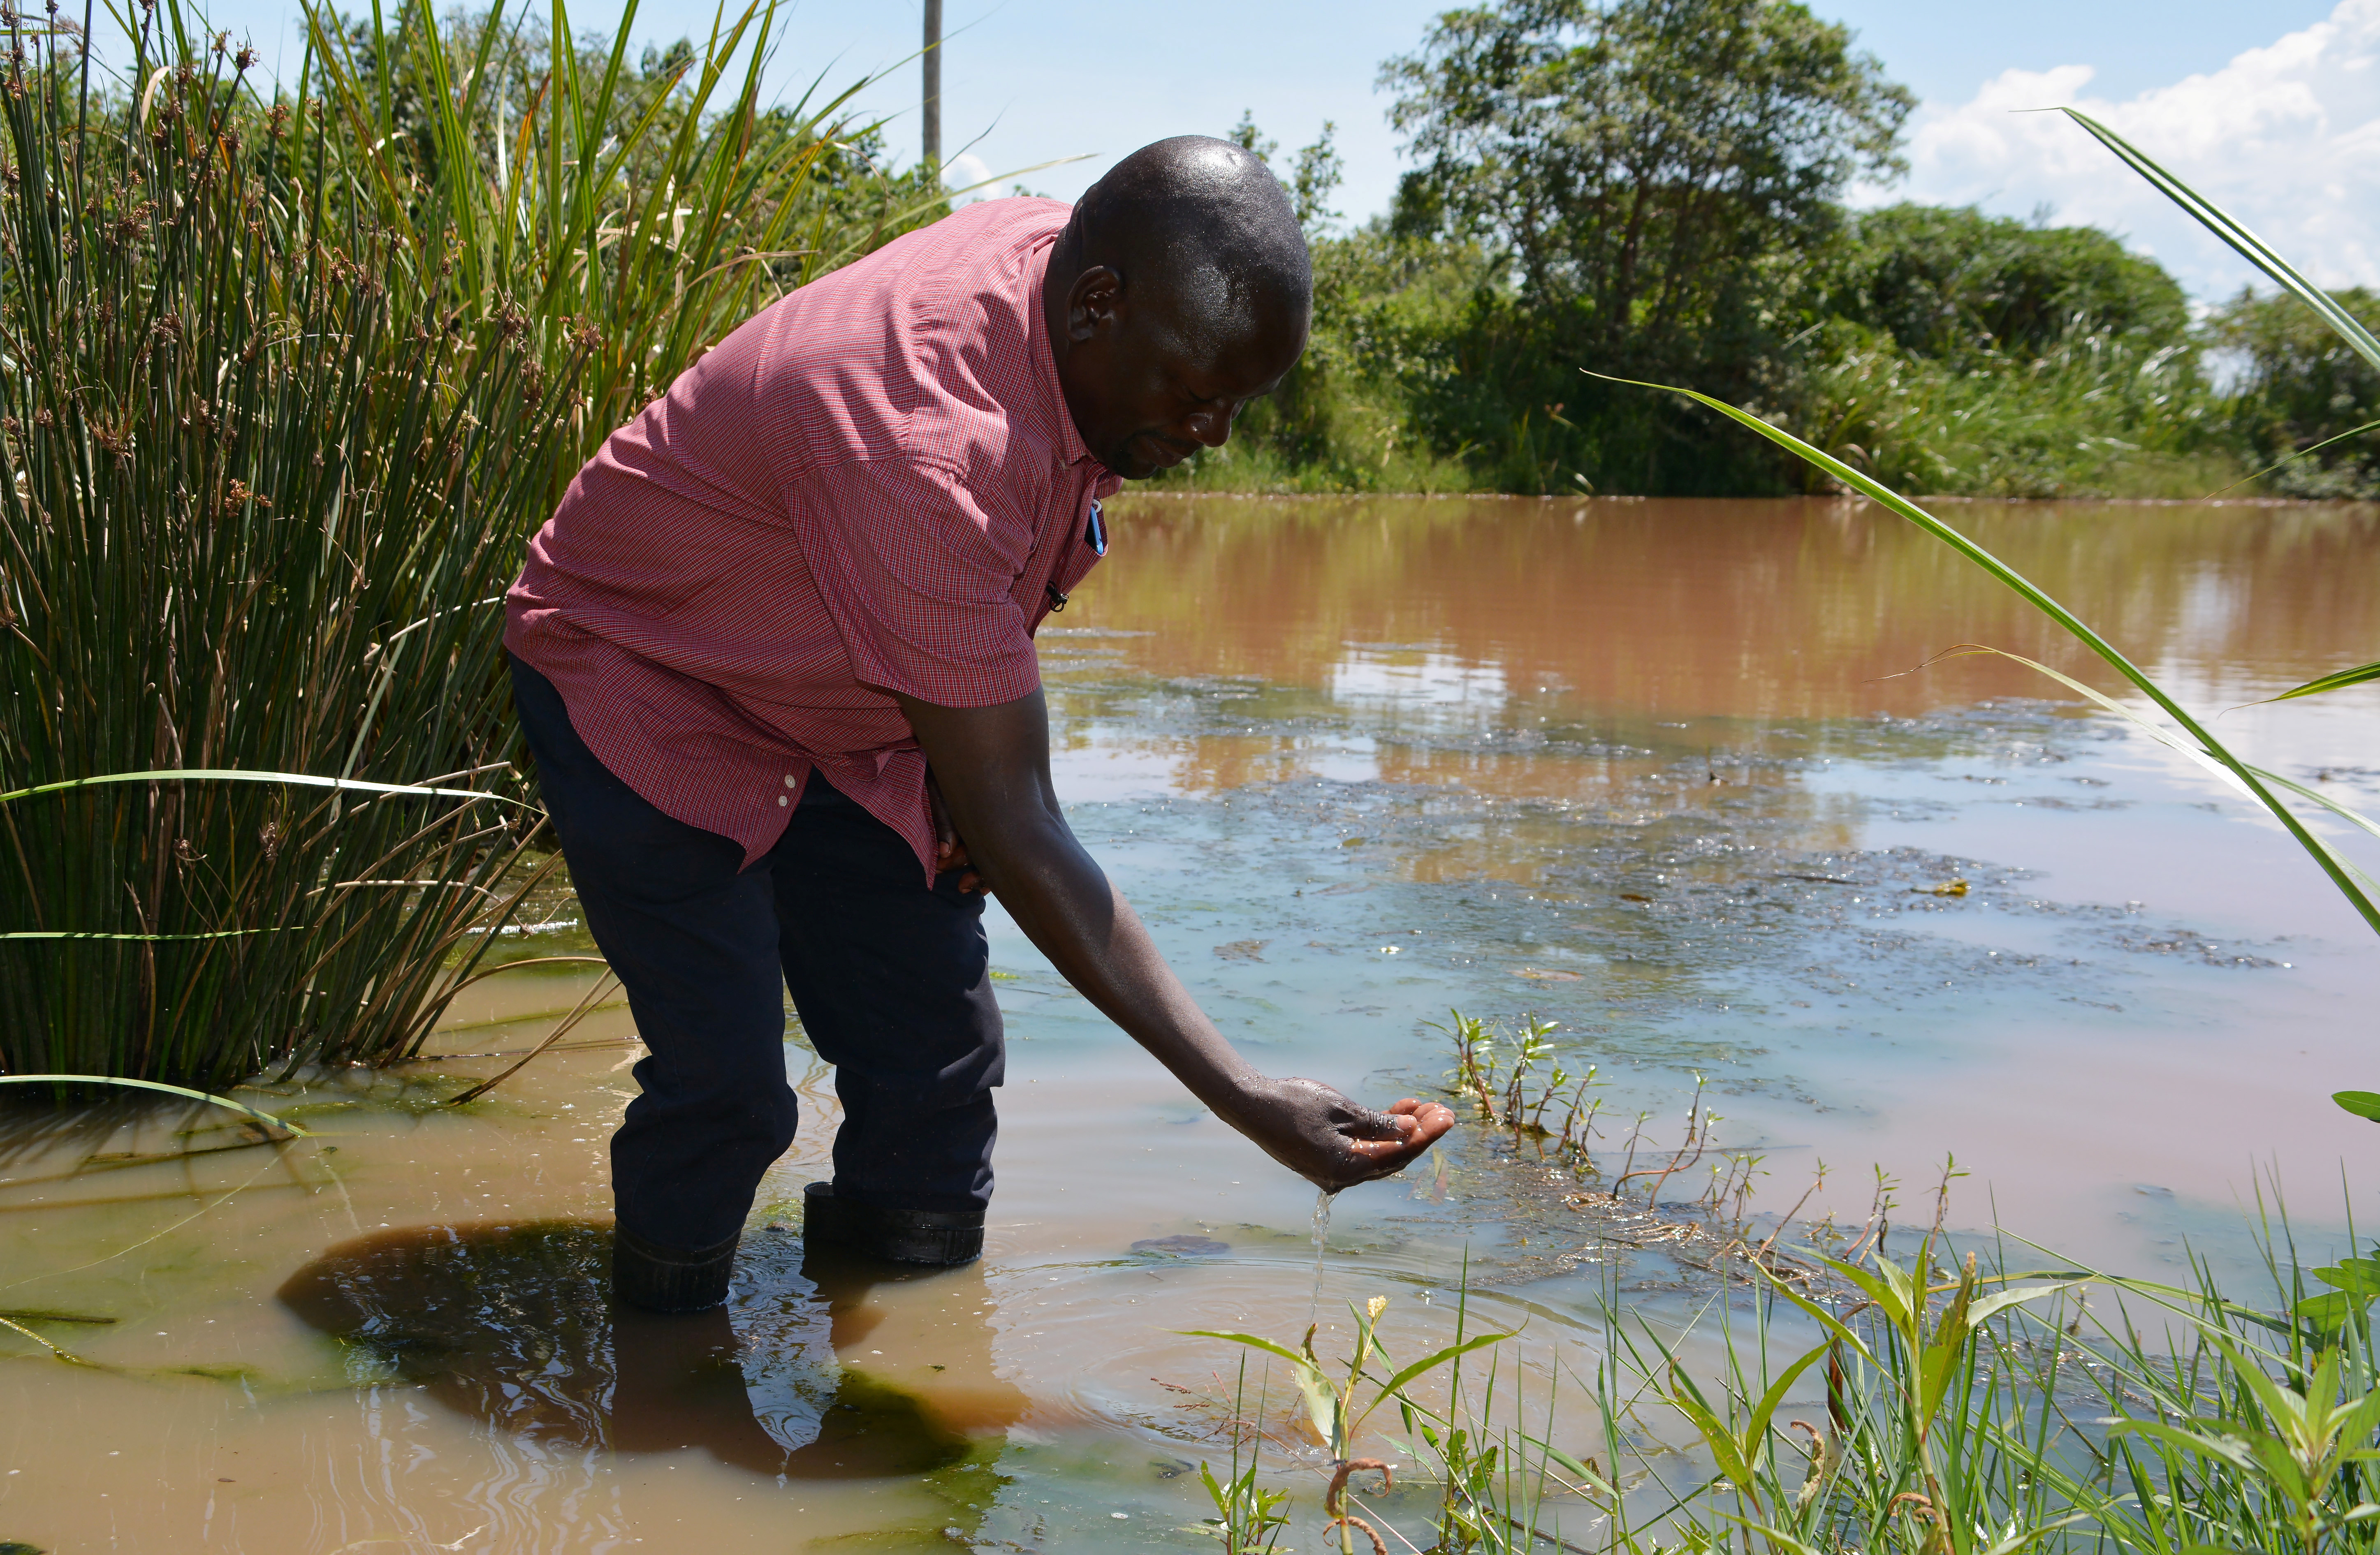 George Oliech, a researcher from the International Centre of Insect Physiology and Ecology (ICIPE), checks the quality of the swamp water in Kamgan village of Nyakach, Kenya May 12, 2020. Picture taken May 12, 2020. REUTERS/Edwin Waita - RC22RG94I59Y